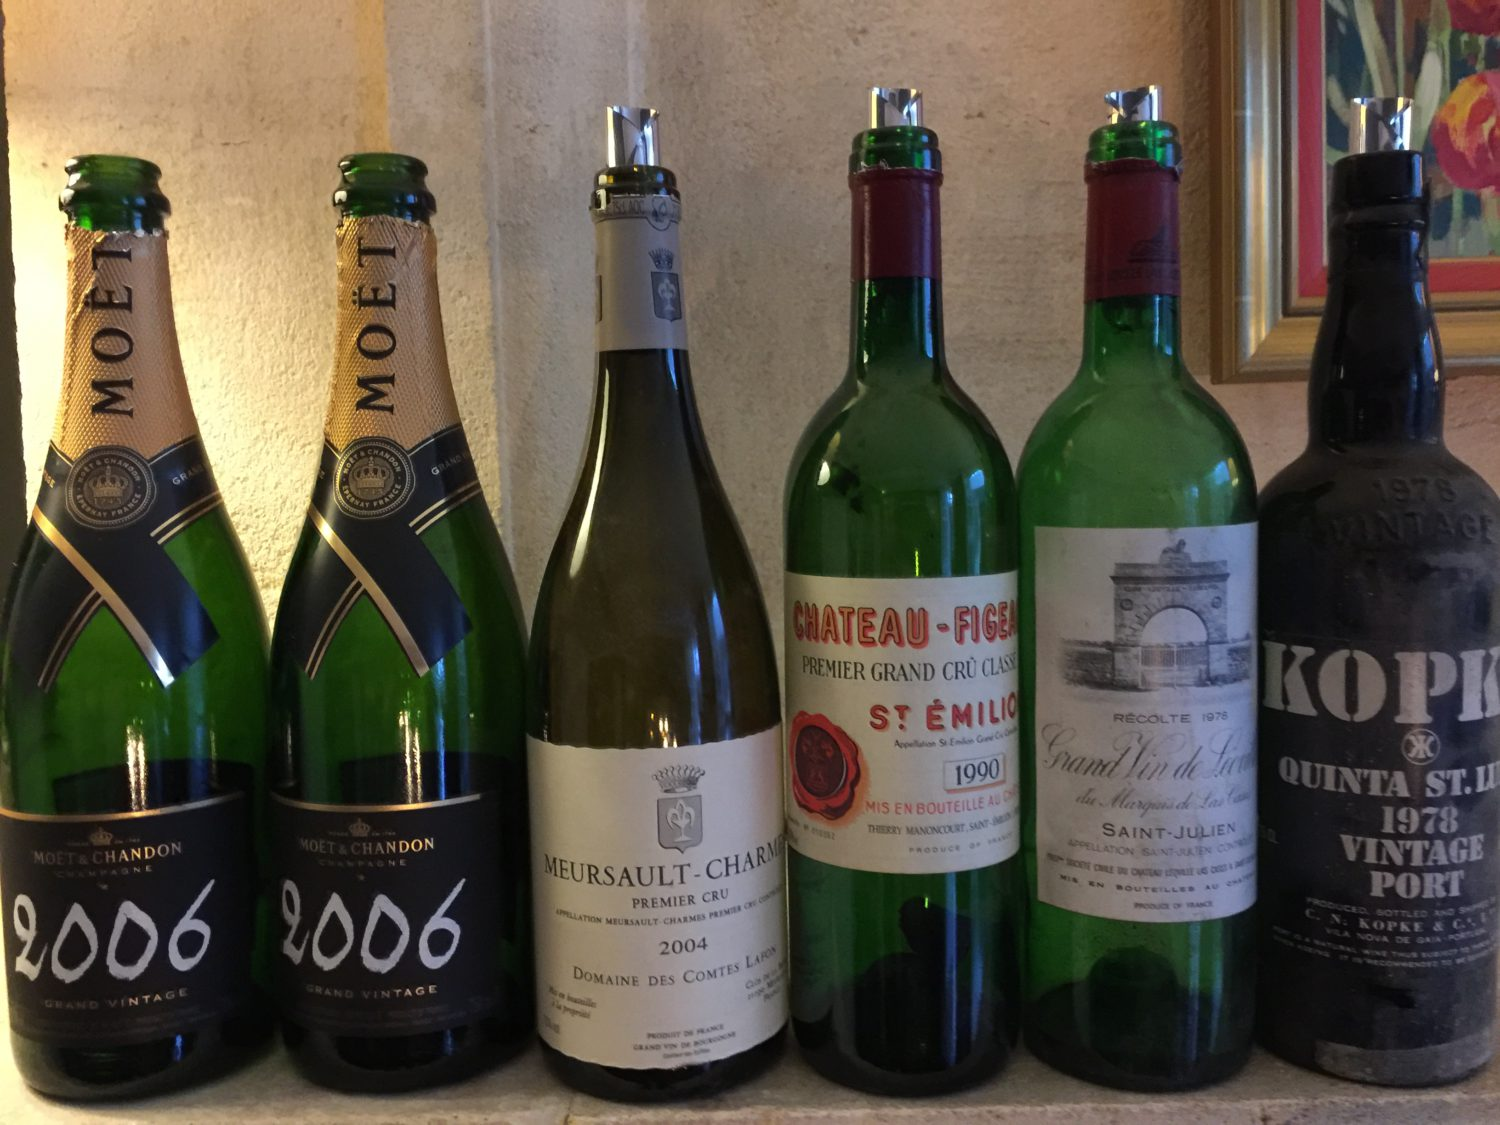 The score of this weekend's dinner party at our chateau